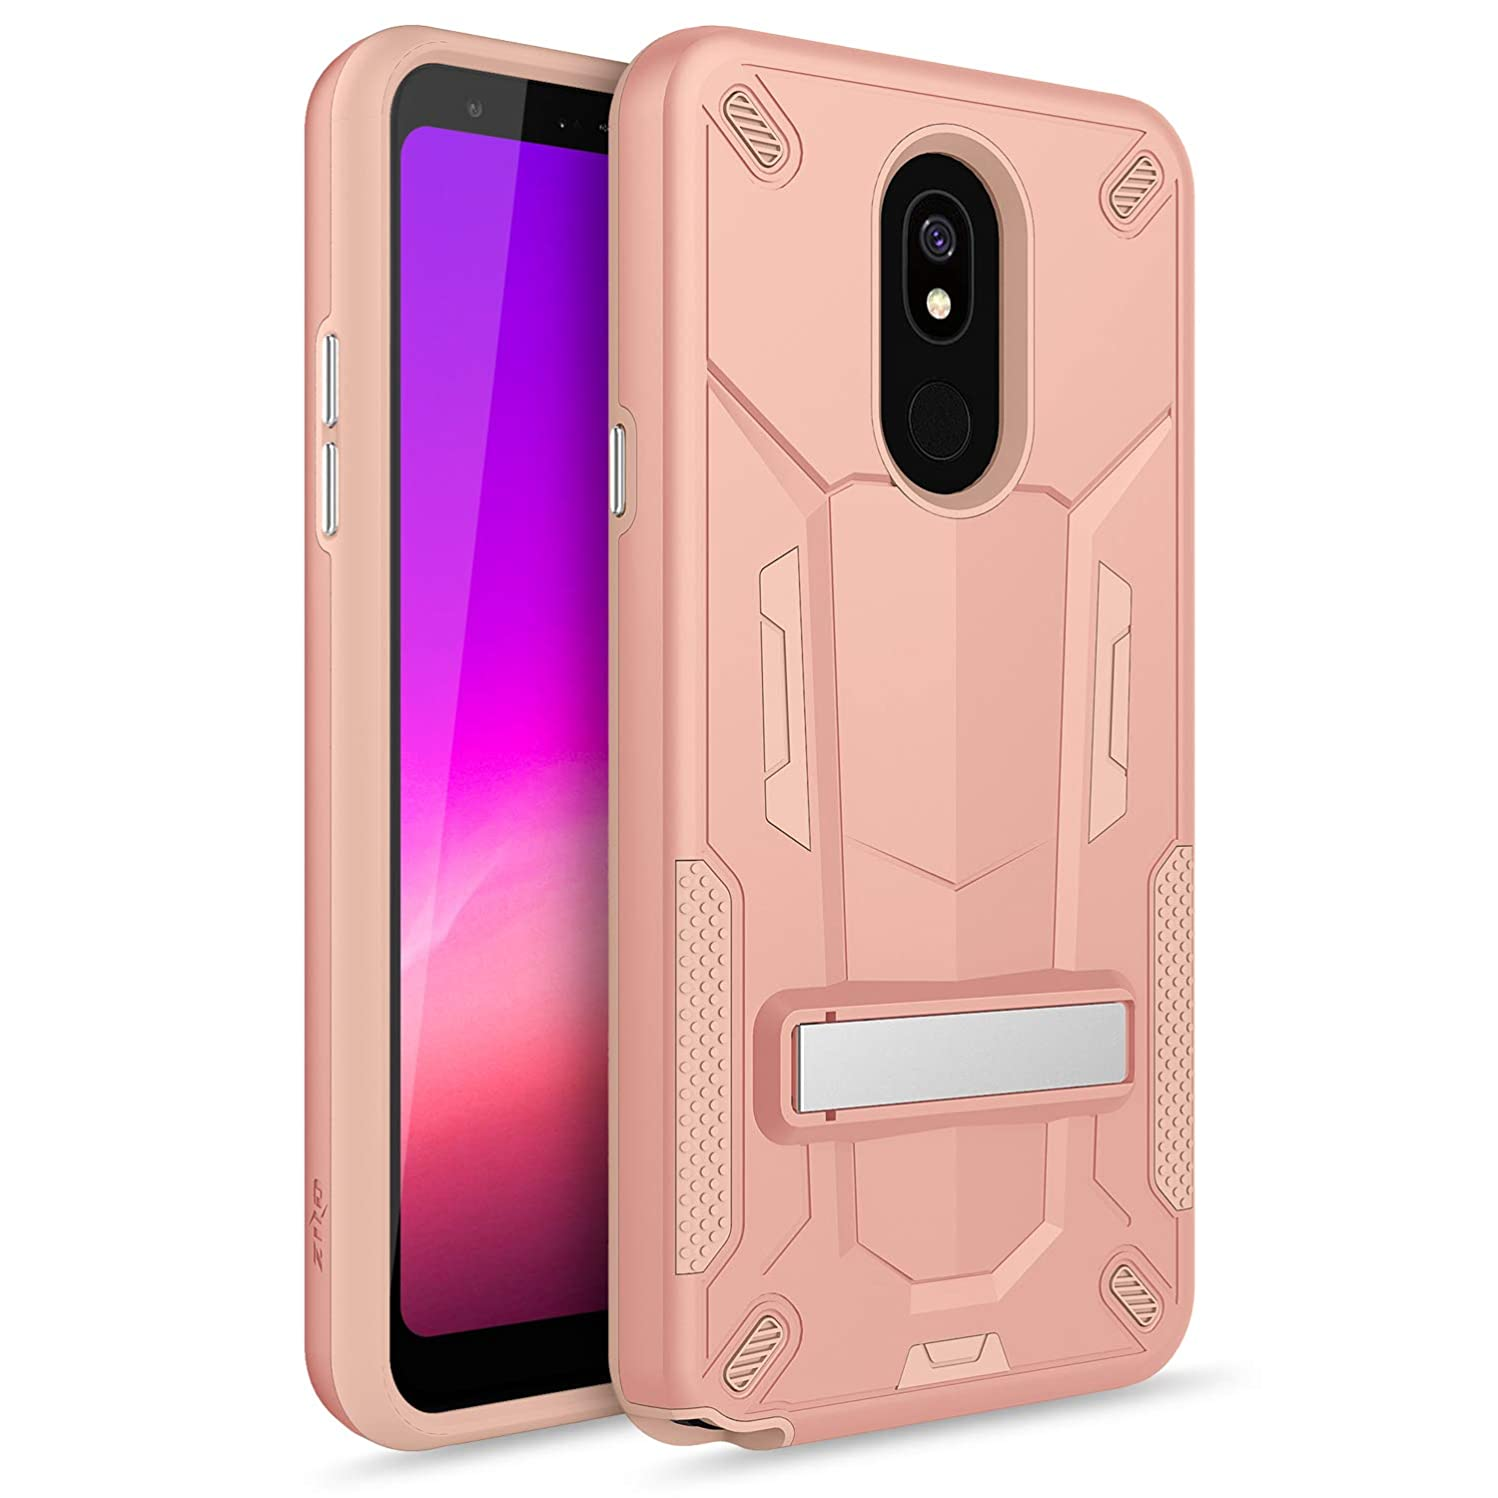 Zizo Transform Series Compatible with LG Stylo 5 Case Dual Layered with Built in Kickstand Slim and Shockproof Rose Gold Peach